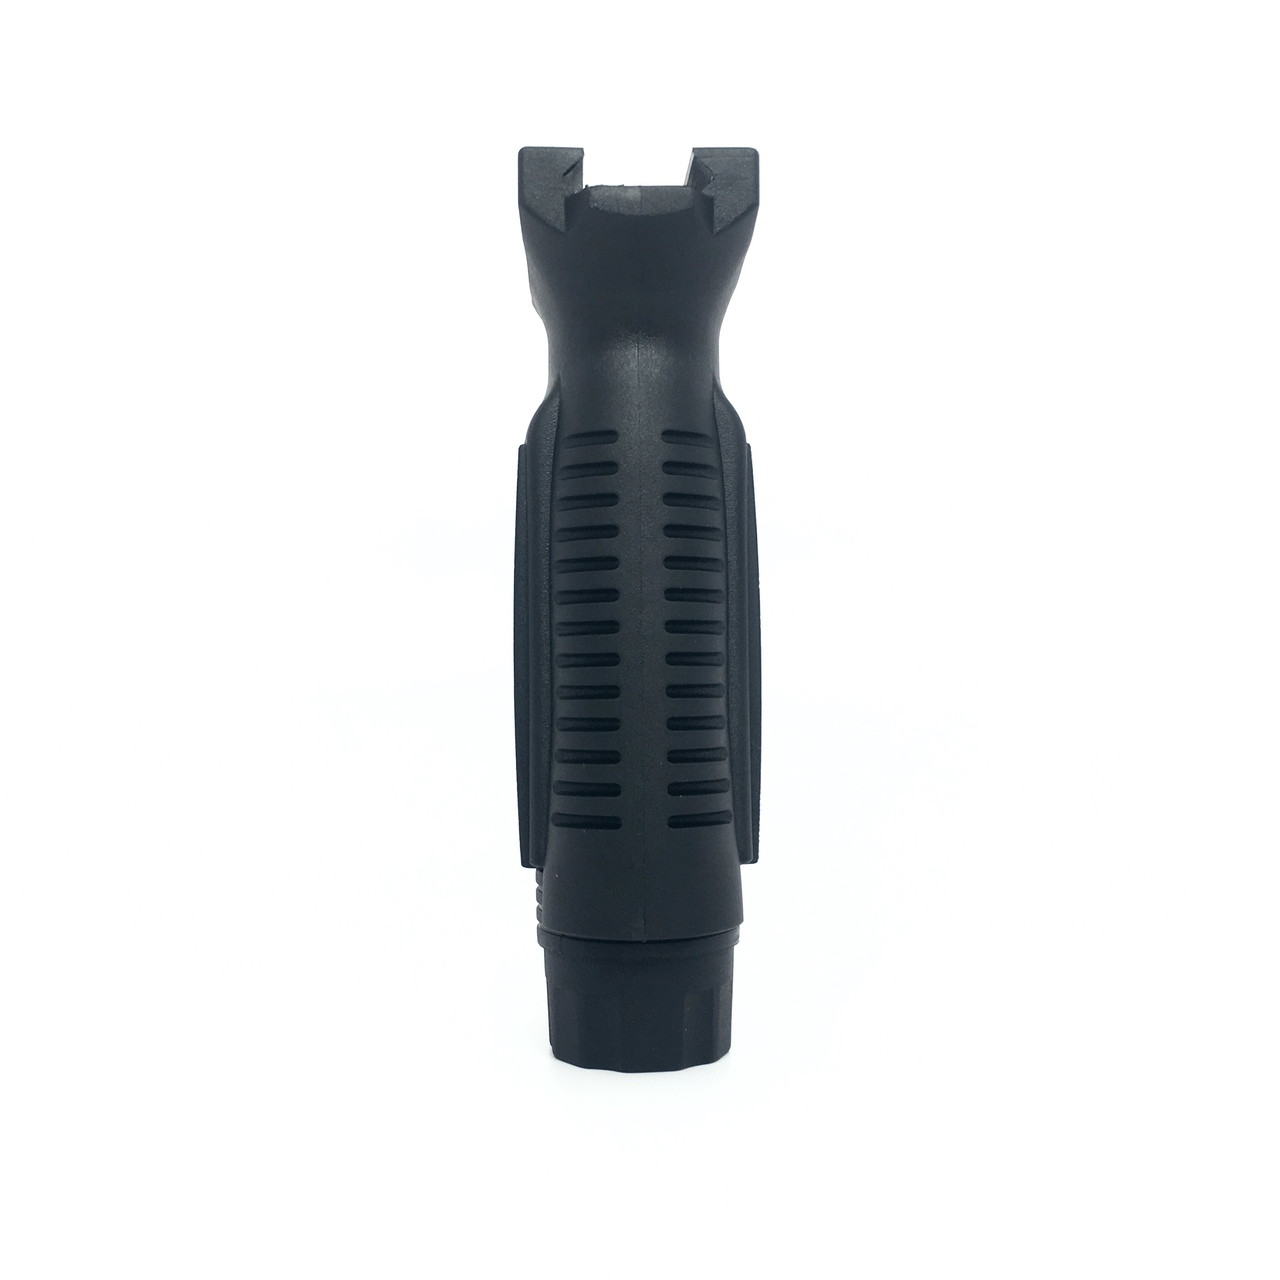 Vertical Grip with Finger Grooves